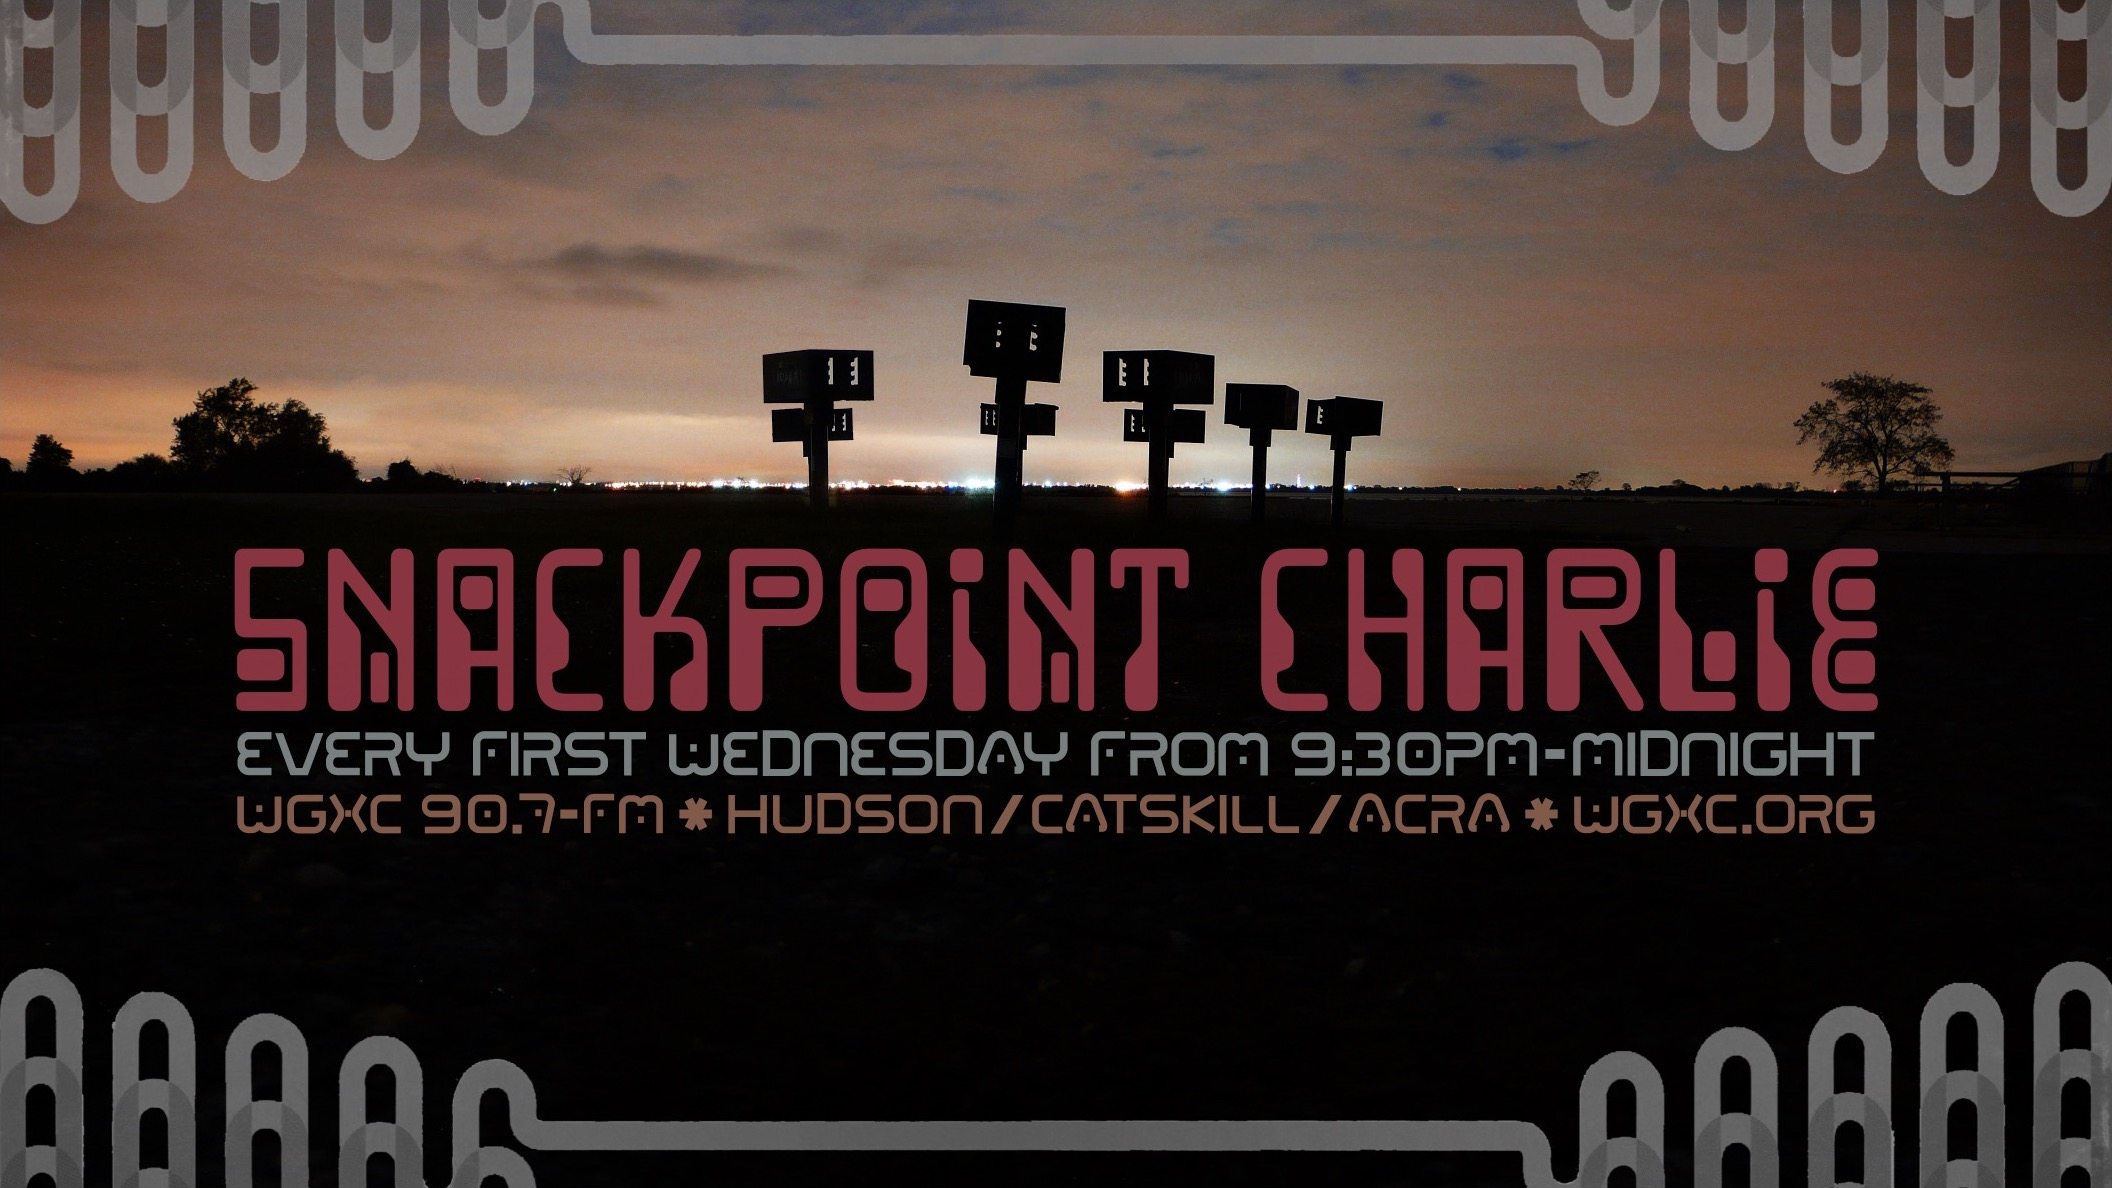 Snackpoint Charlie: 20181107